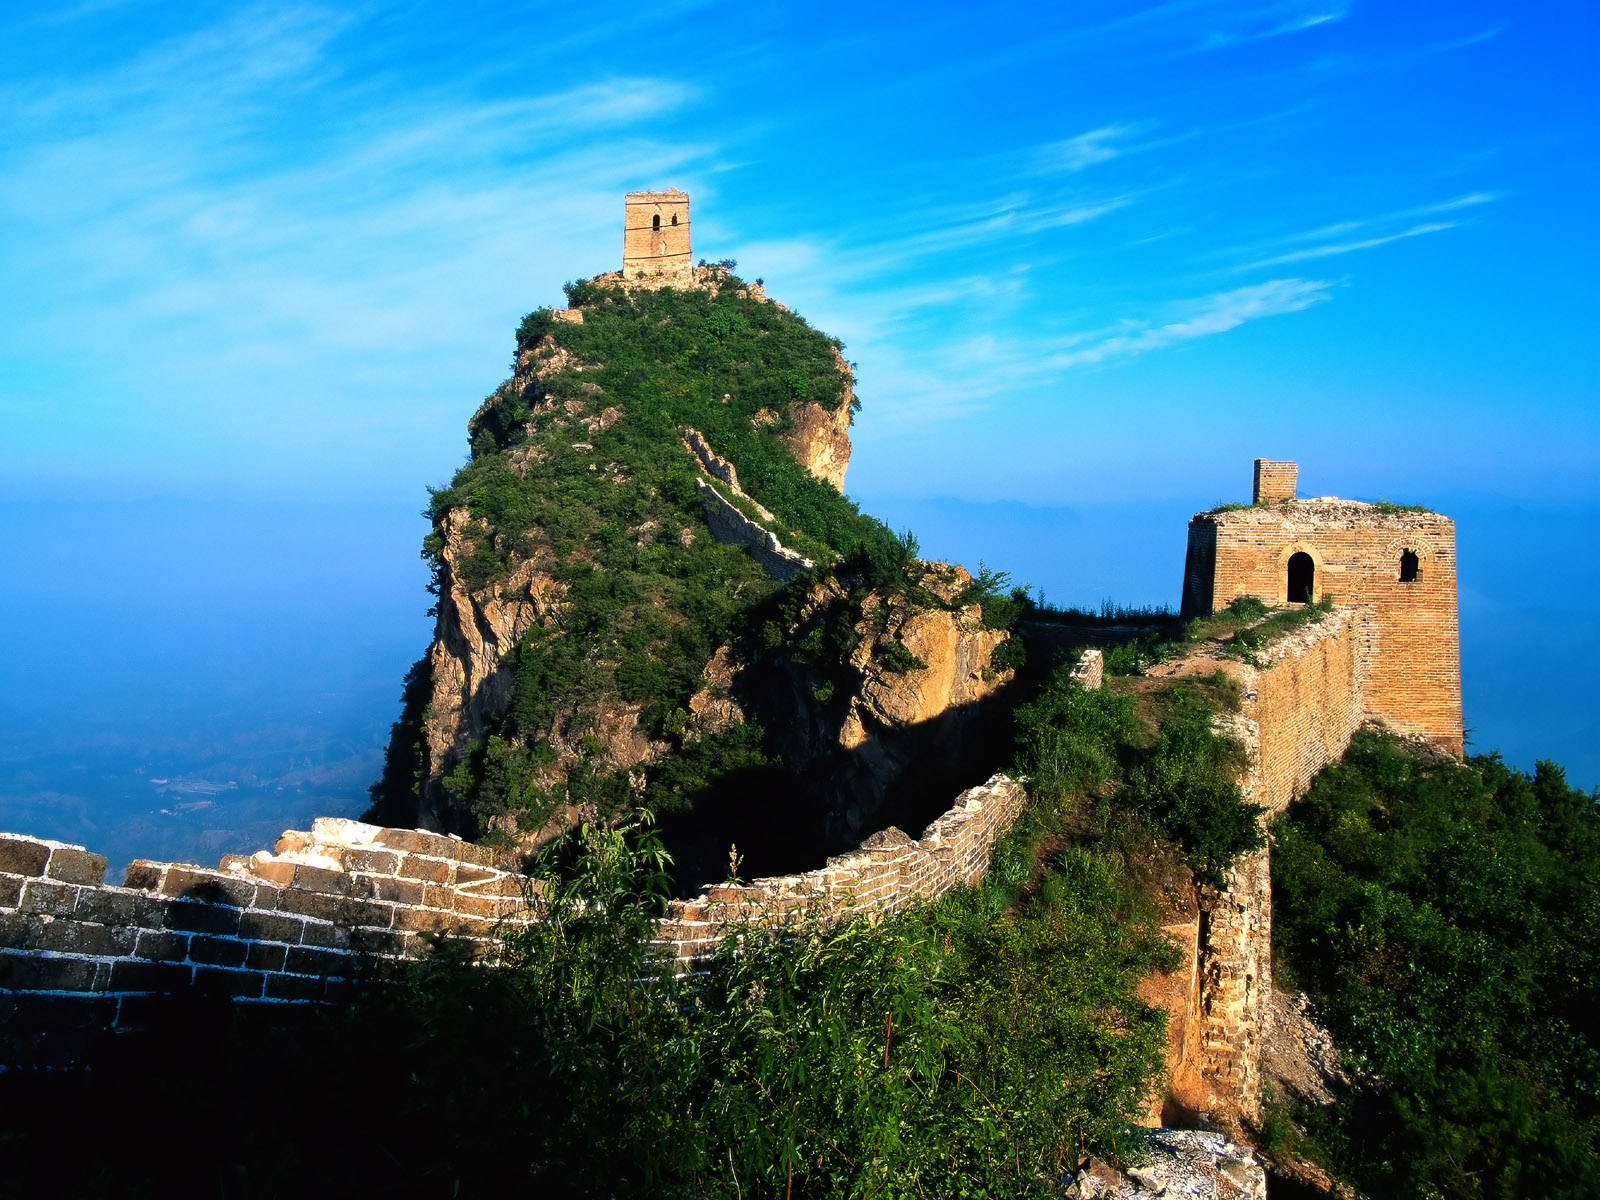 The_Great_Wall_Of_China_Wallpaper